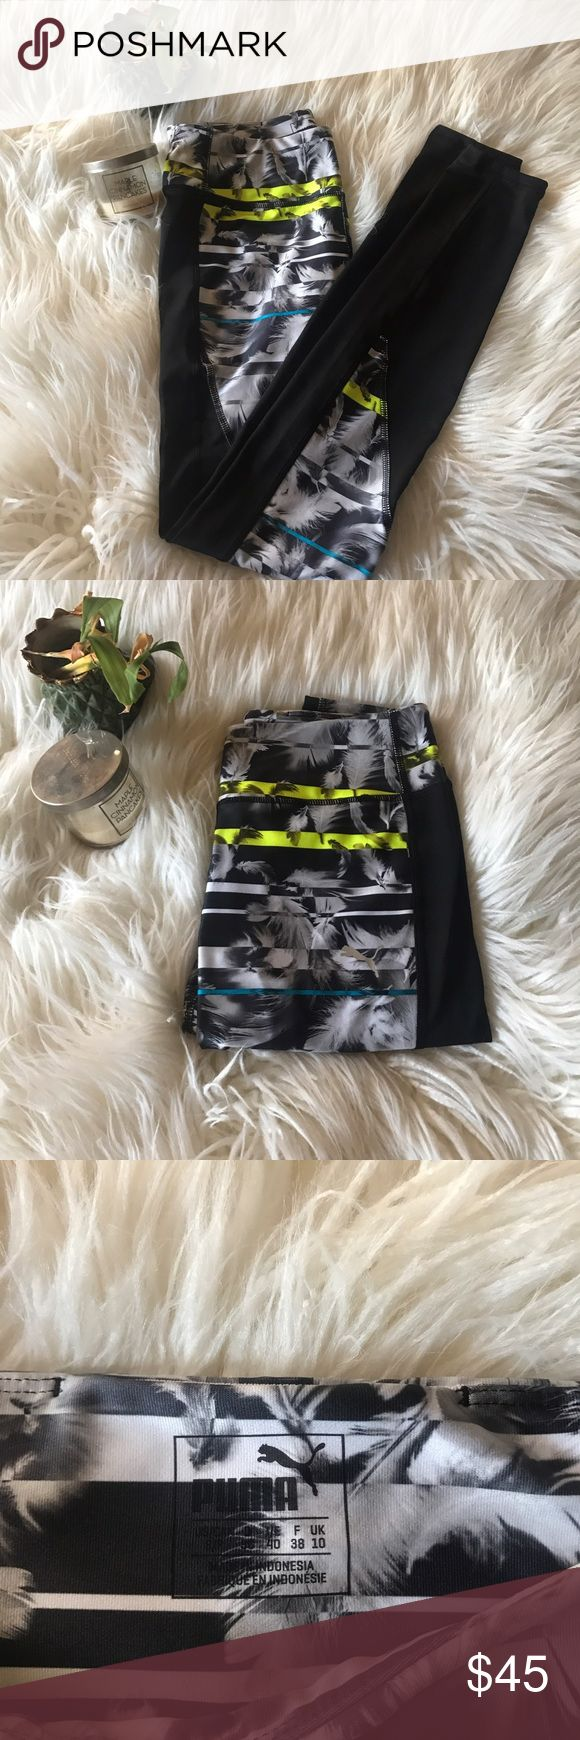 Puma NWT workout leggings NWT puma work out leggings . Palm tree print with lime green and light blue coloring, you'll definitely be catching some eyes in these pants 💪🏼💚 Puma Pants Leggings